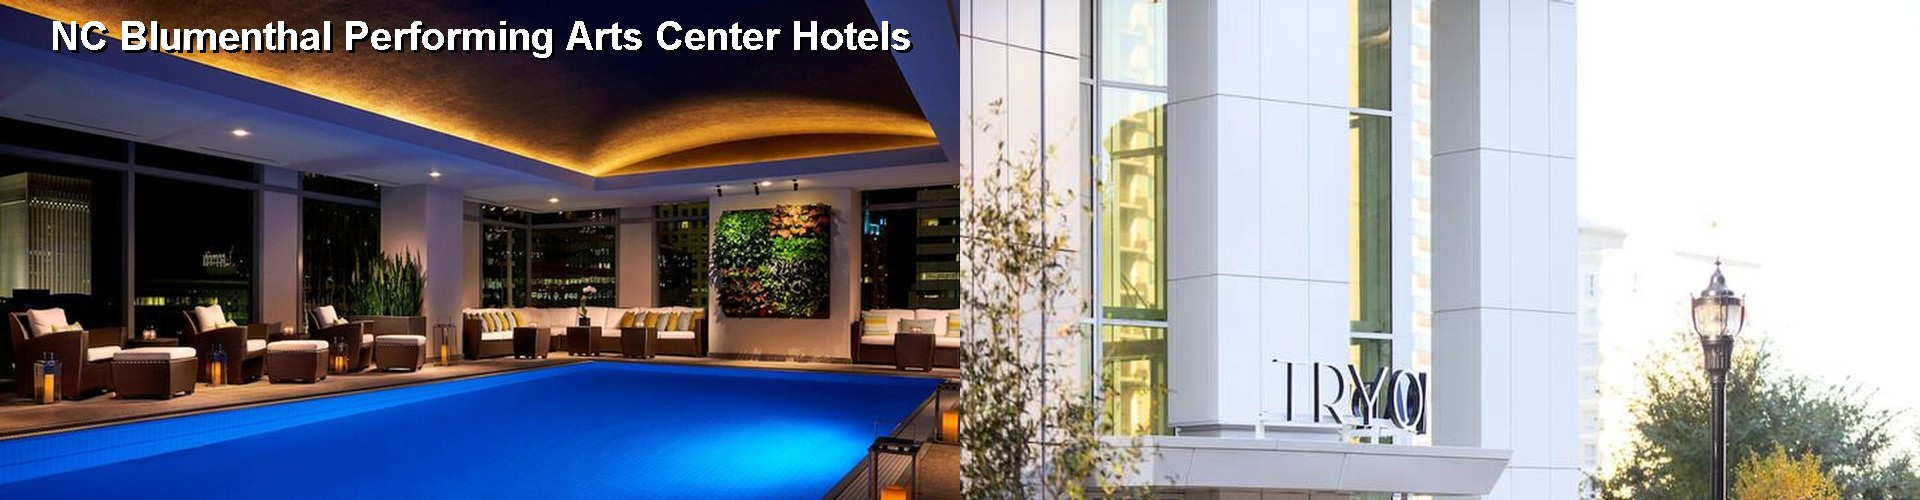 5 Best Hotels near NC Blumenthal Performing Arts Center